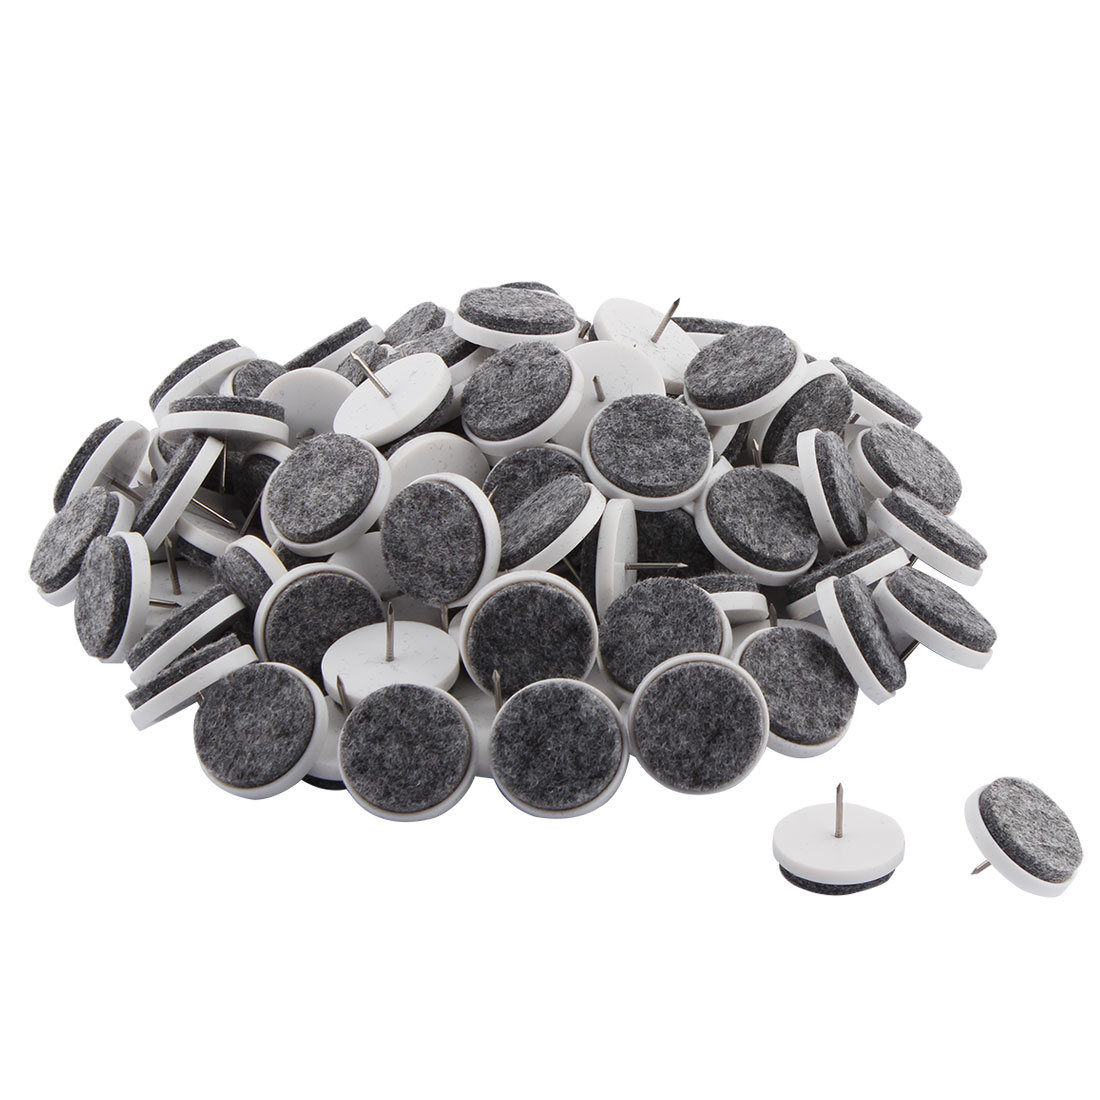 Household Plastic Furniture Table Chair Leg Nail Protector Gray White 80 Pcs